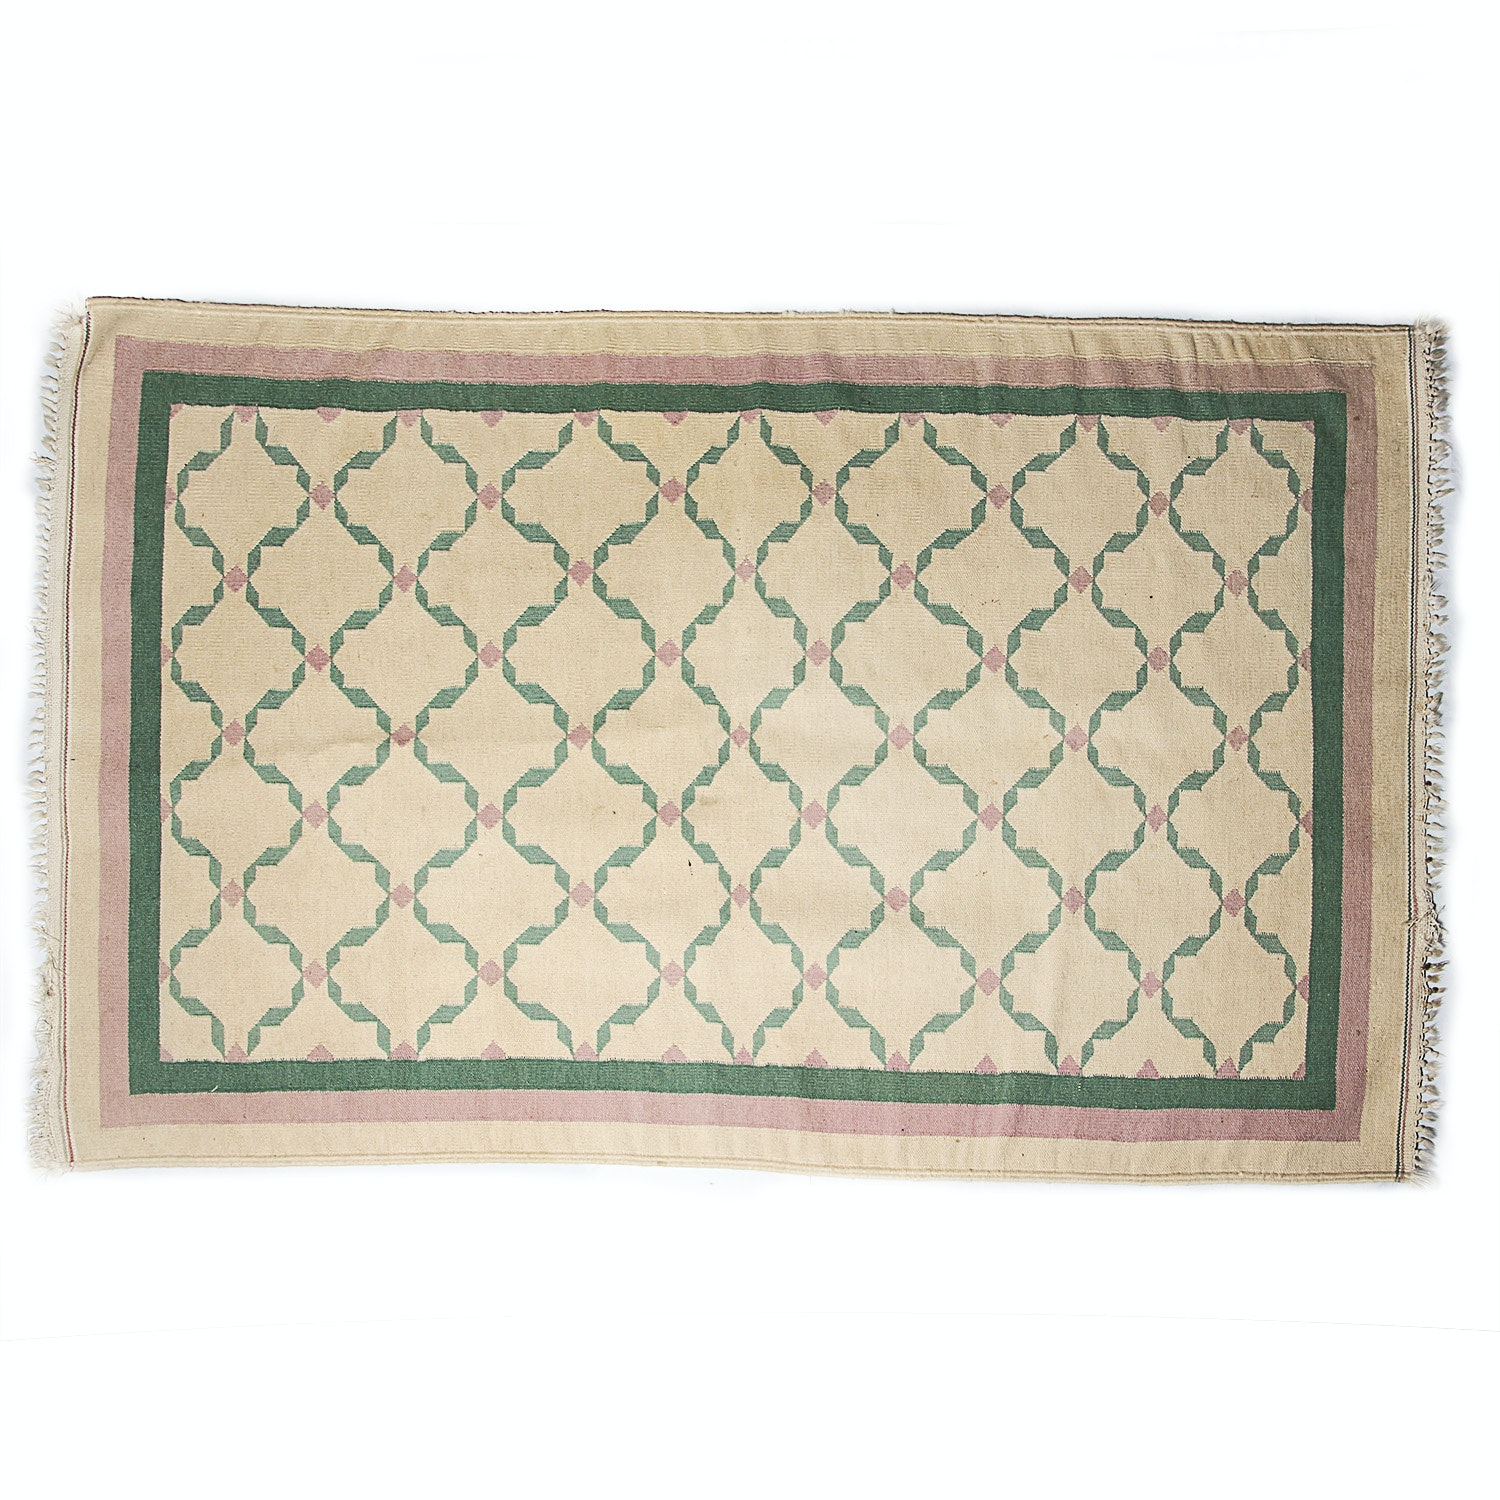 Woven Southwestern Wool Area Rug in Cream, Pink and Turquoise